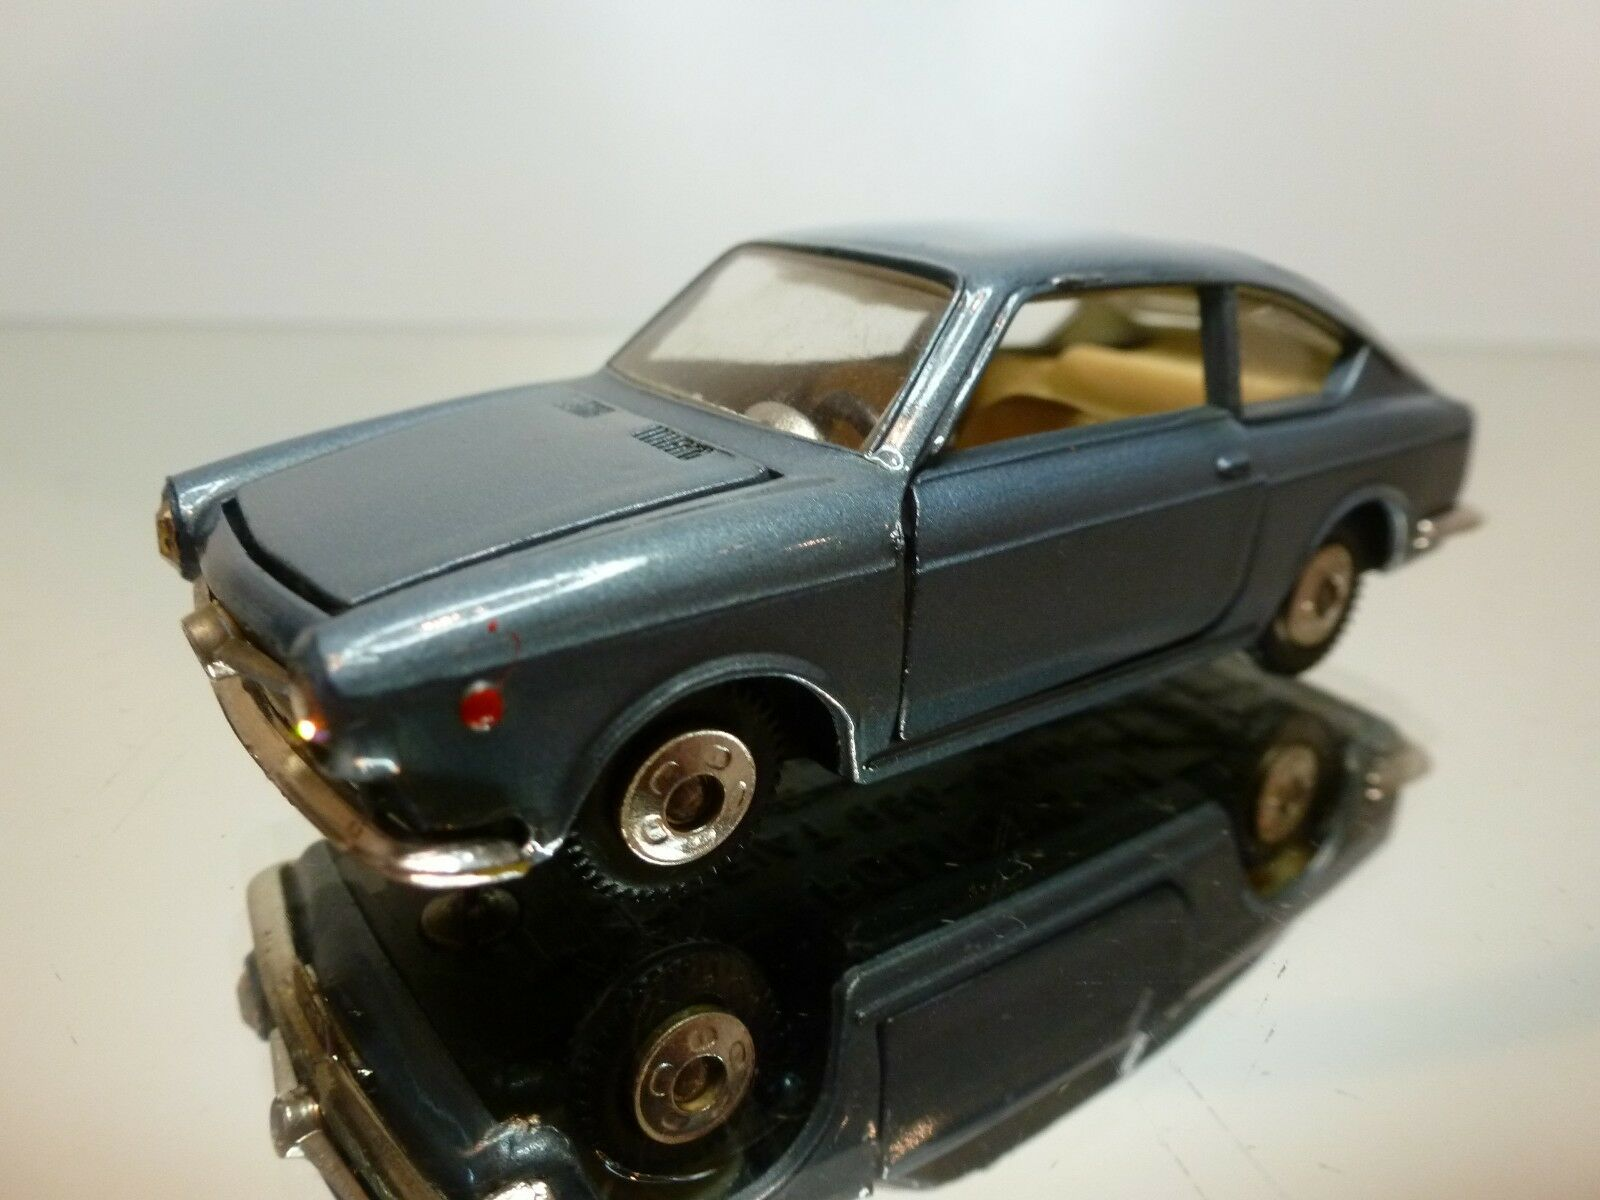 POLITOYS - M 517 FIAT 850 COUPE - bleu METALLIC 1 43 - VERY GOOD CONDITION - 2